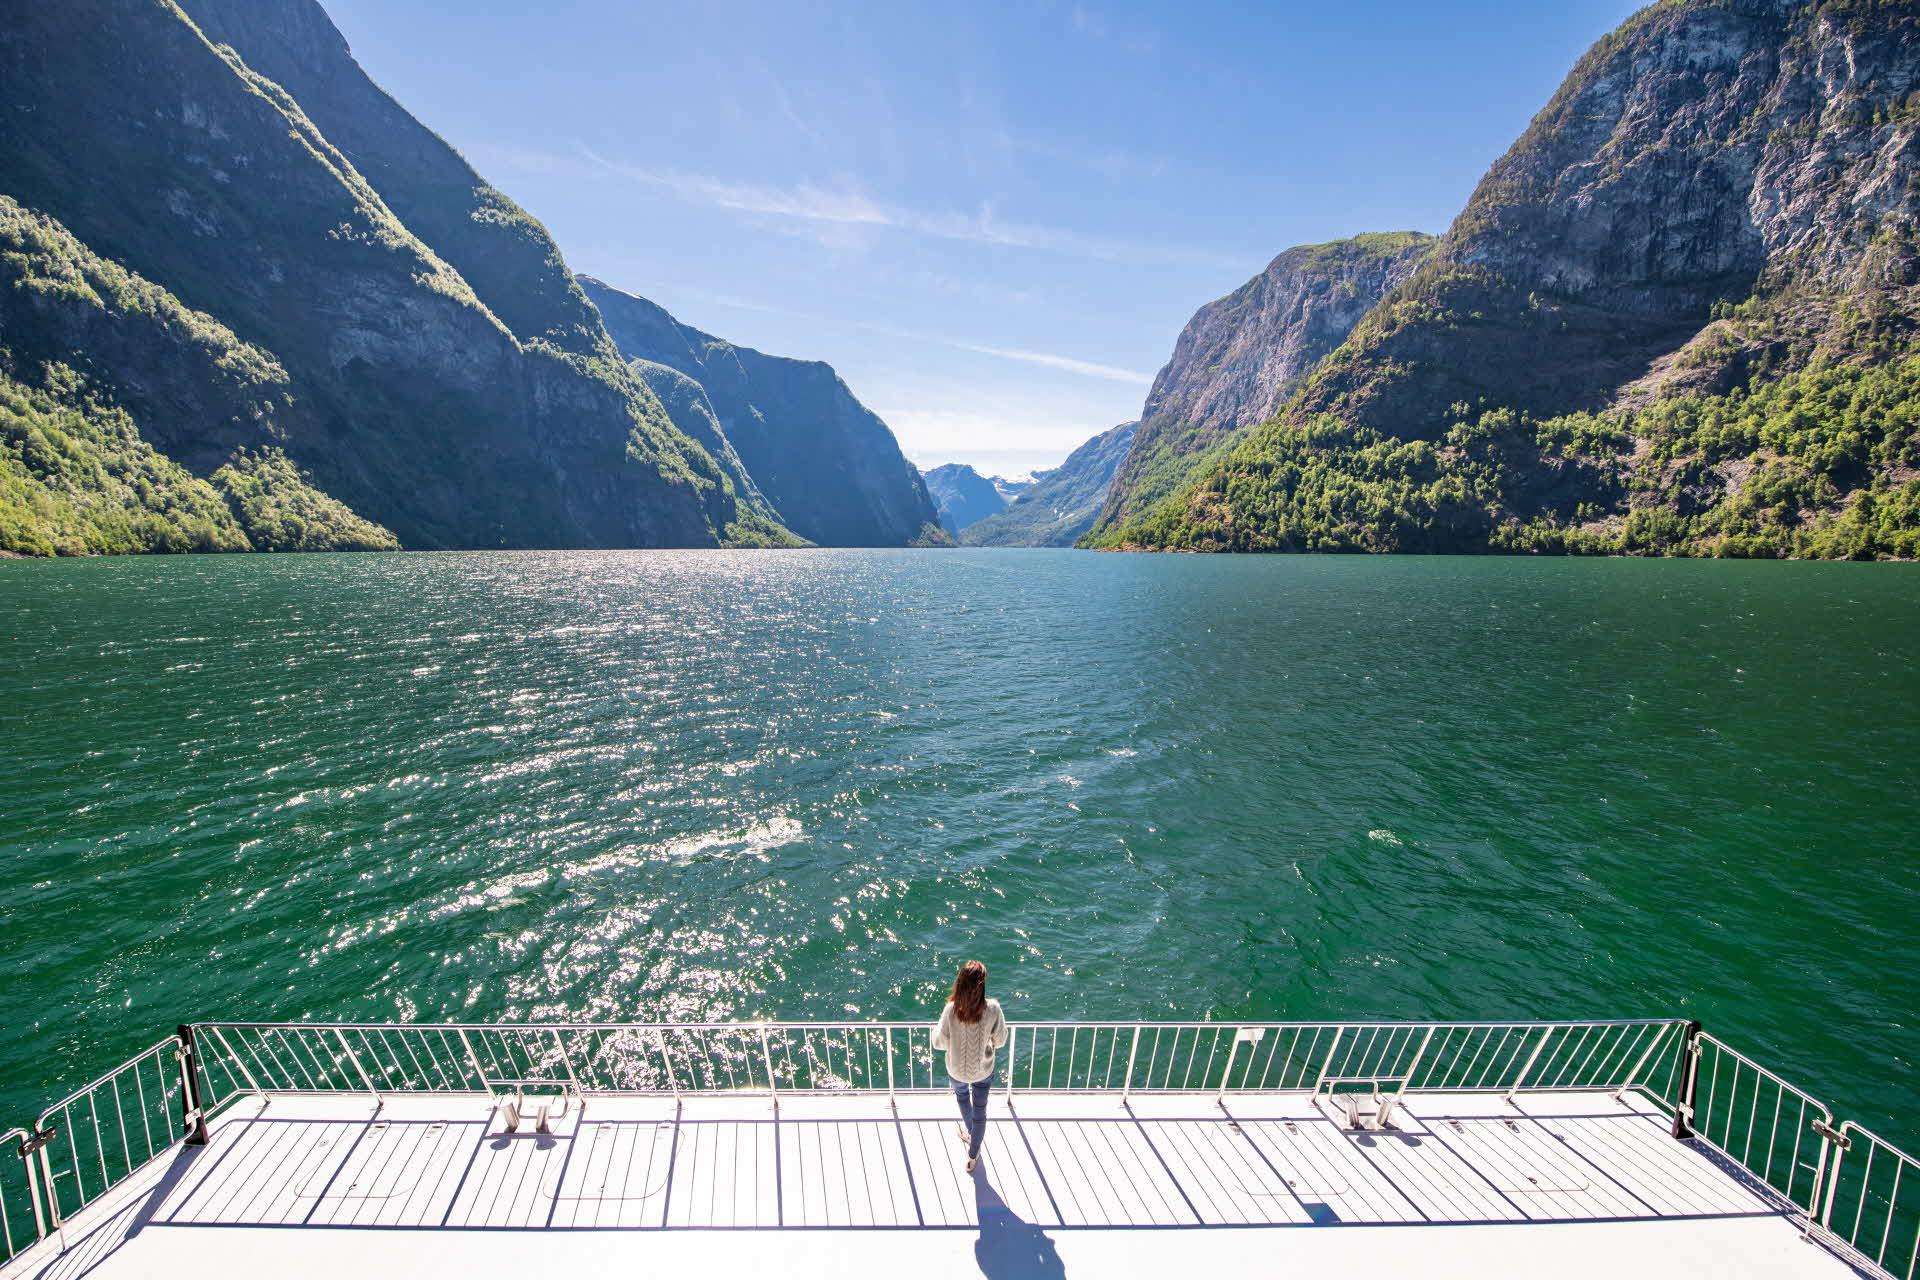 A woman stands at the bow of the Future of the Fjords, looking in towards the Nærøyfjord